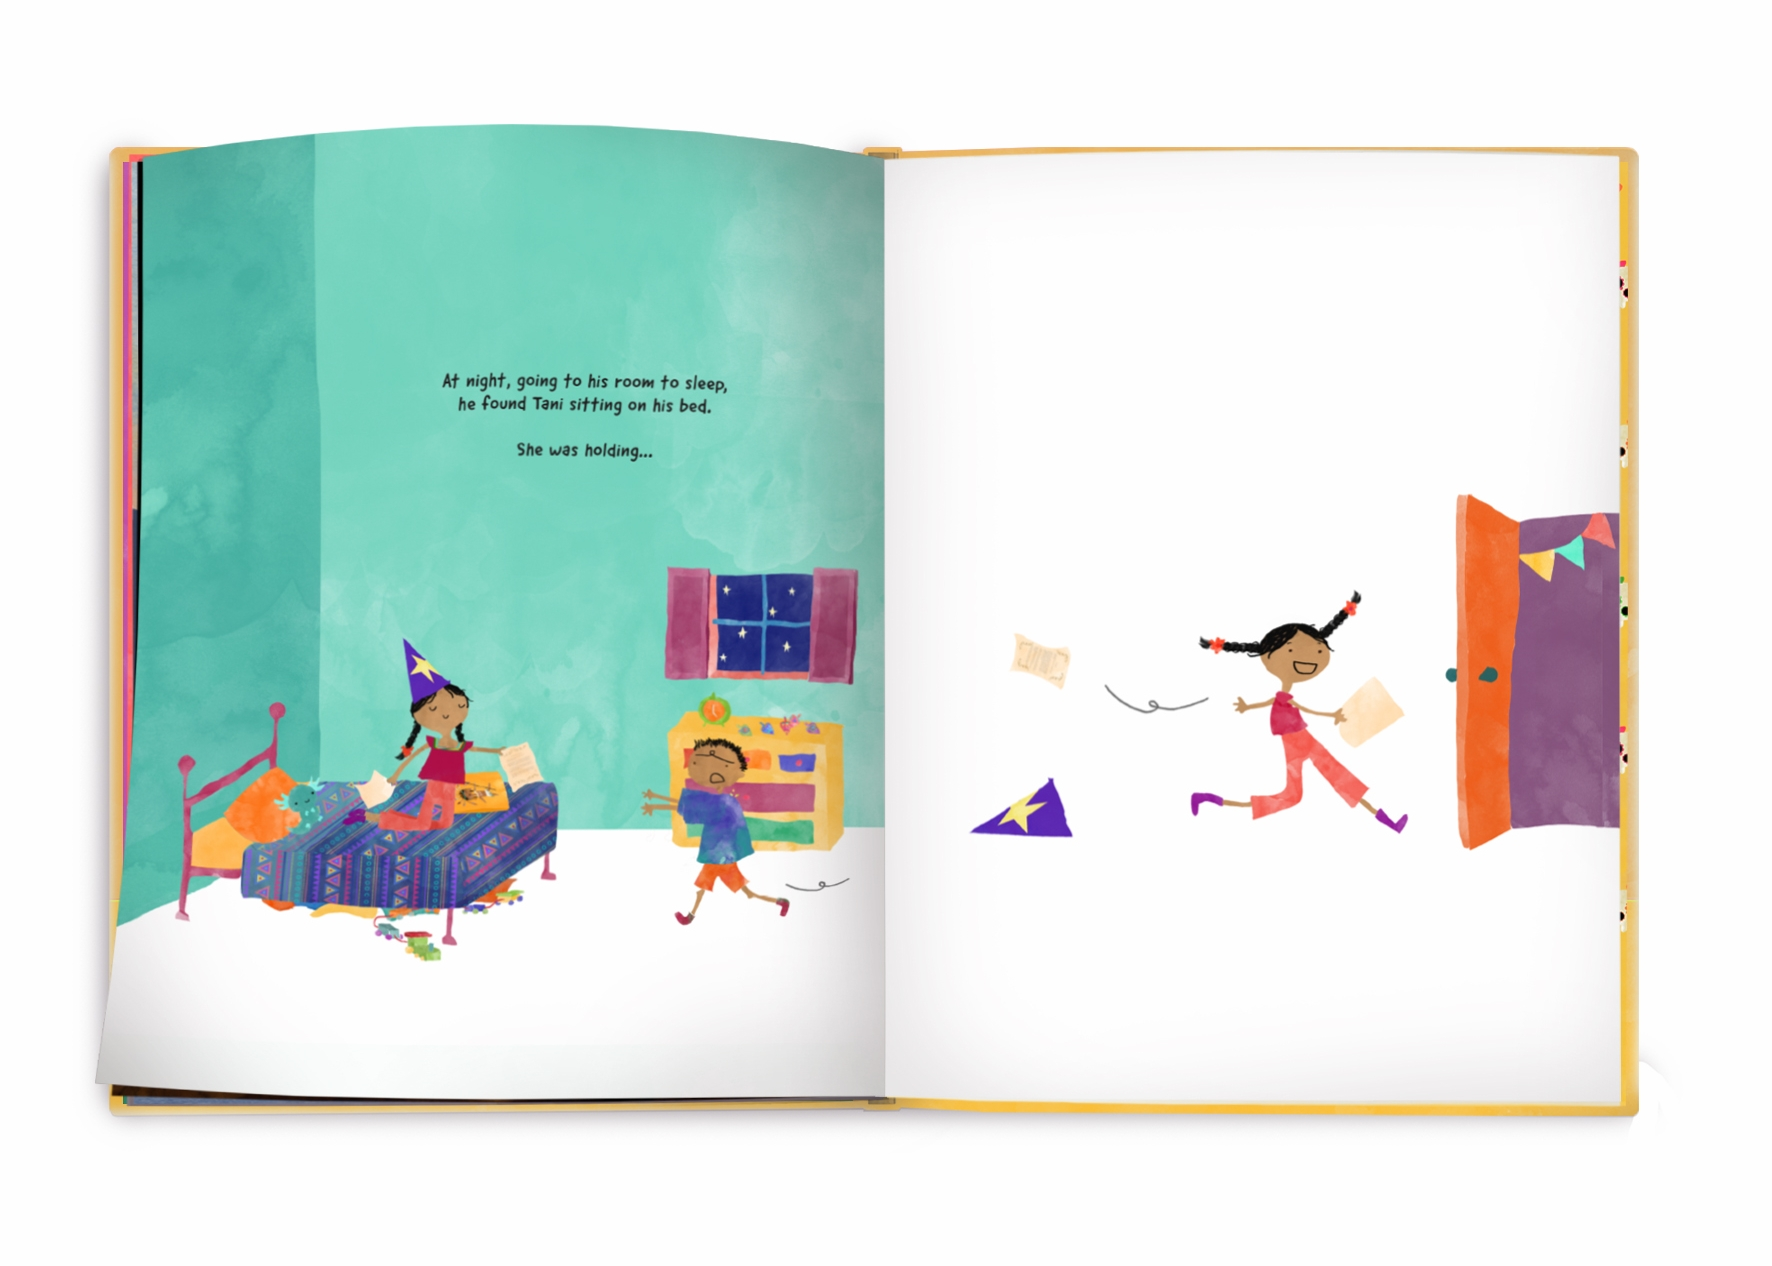 worldwide_buddies_picture_book_mexico_adri_room.jpg